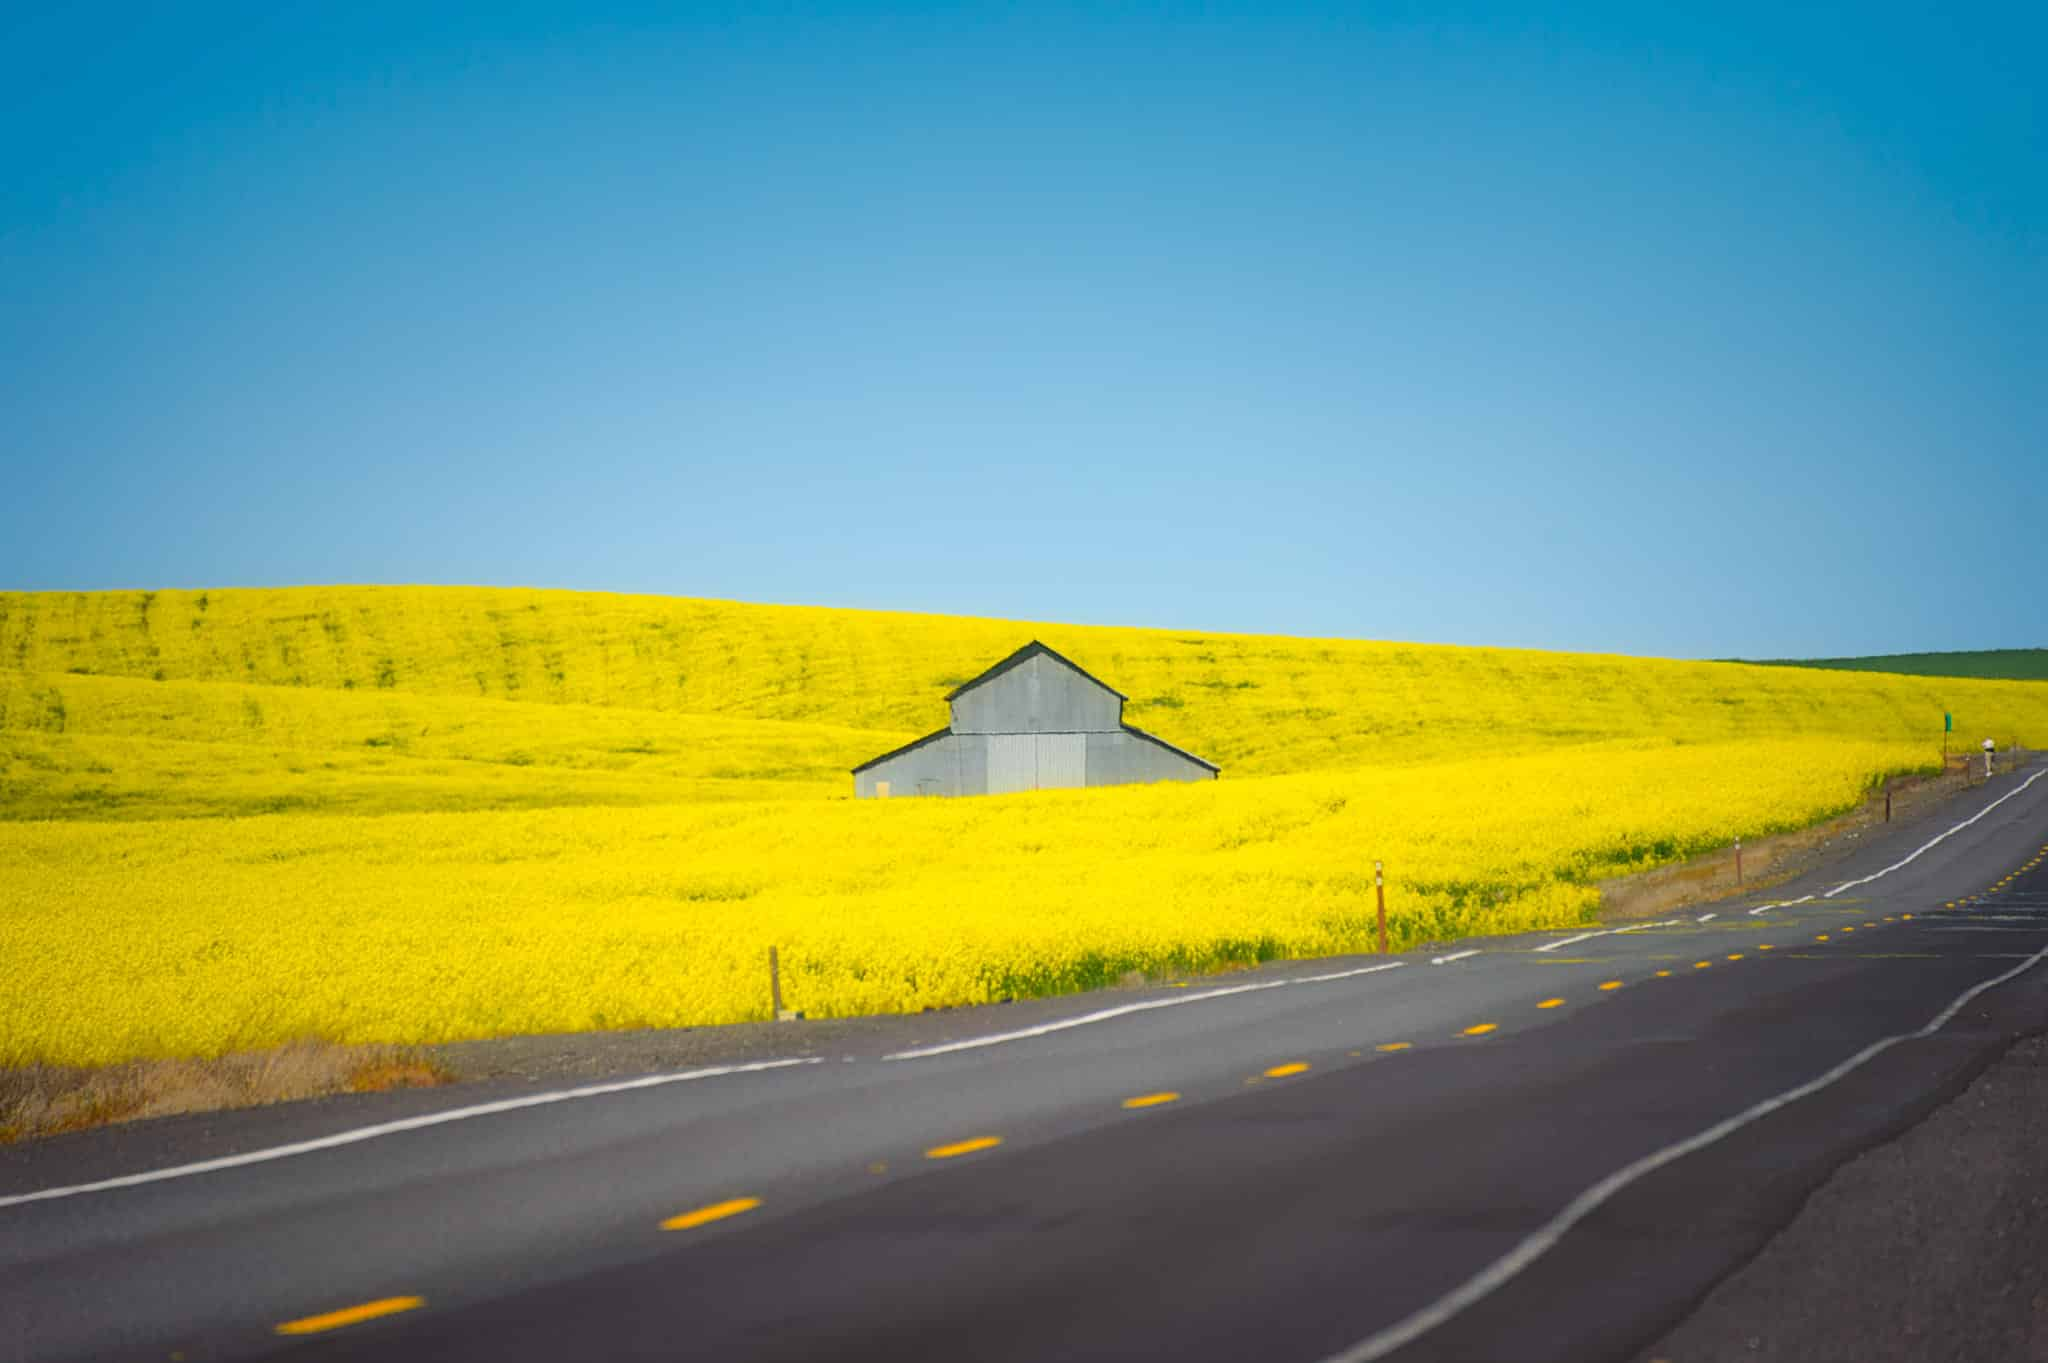 A corrugated metal barn sits in a field of Canola in the Palouse region of eastern Washington, south of Spokane.